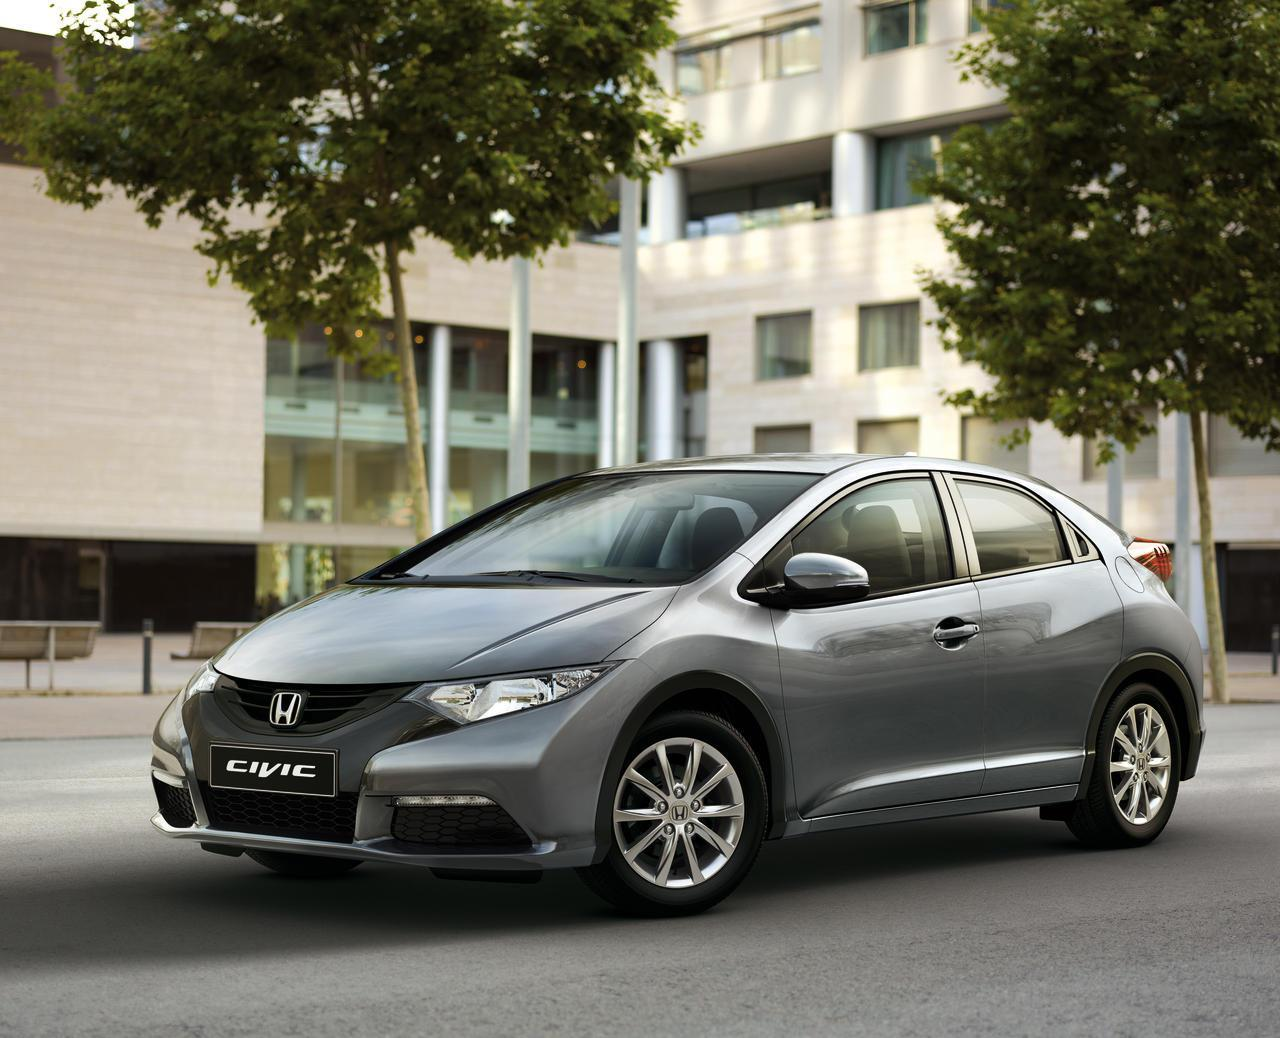 Foto de Honda Civic 2012 (98/153)